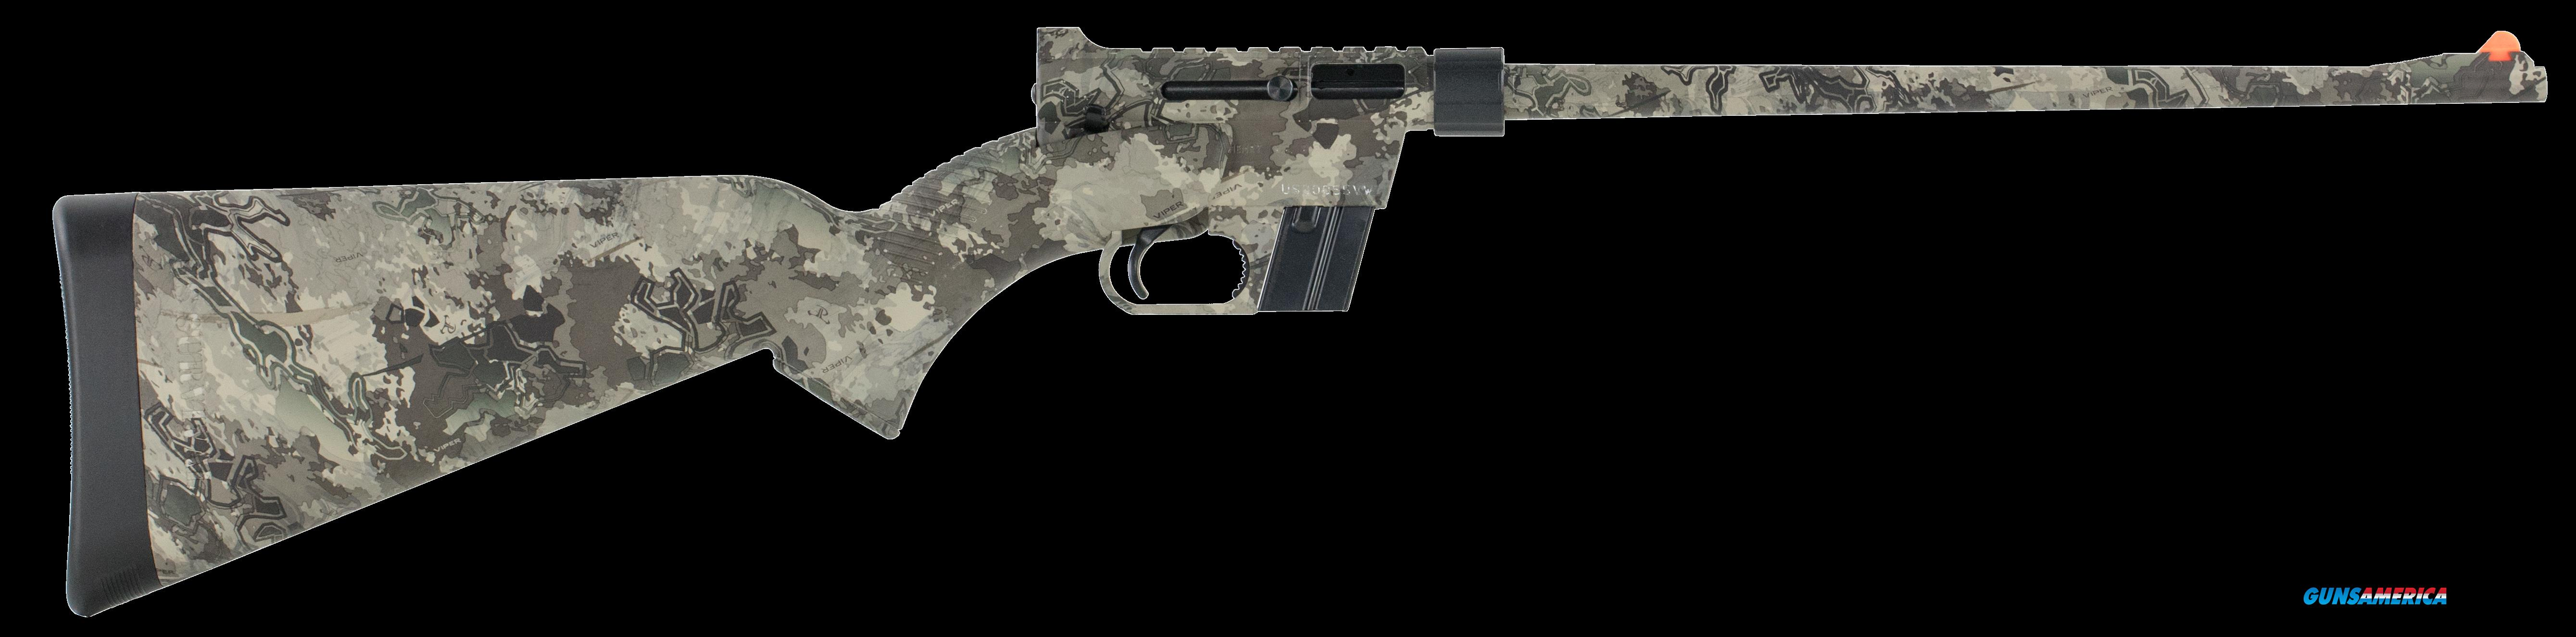 "Henry H002VWP U.S. Survival AR-7 Semi-Automatic 22 Short/Long/Long Rifle 16.5"" 8+1 Synthetic  Guns > Rifles > H Misc Rifles"